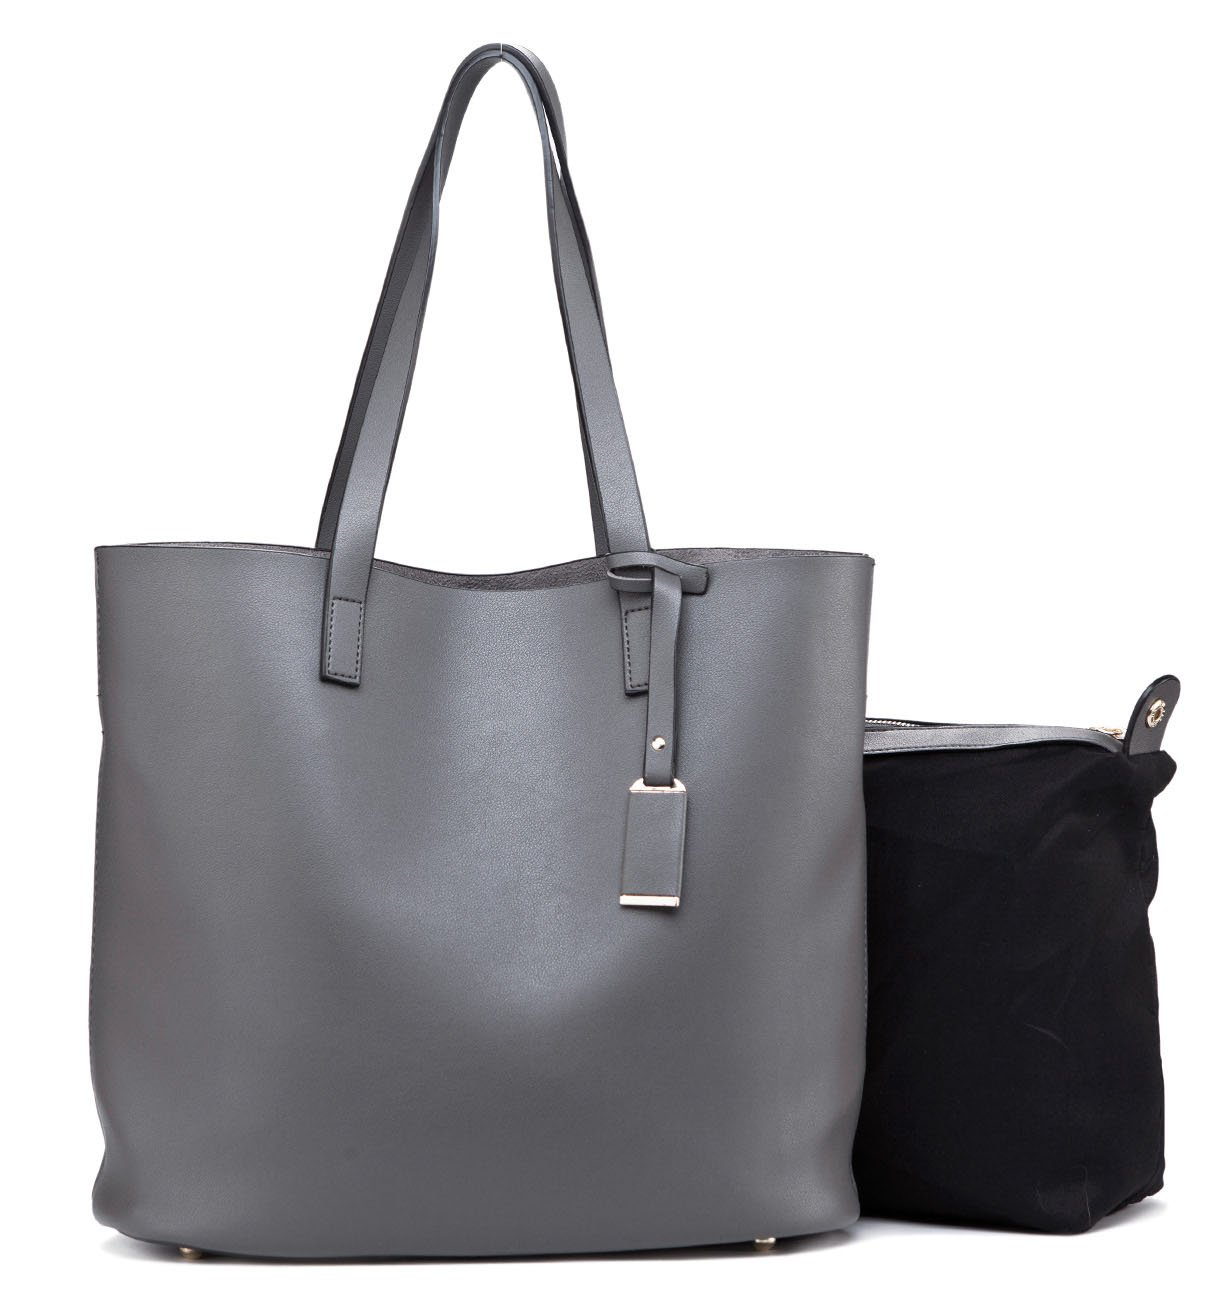 4e1c81c92c142 Buy Ilishop Pu Leather Handbag Designer Pure Color Pures Large Capacity  Shoulder Bag Classical Tote Bags (Grey) Online at Low Prices in India -  Amazon.in